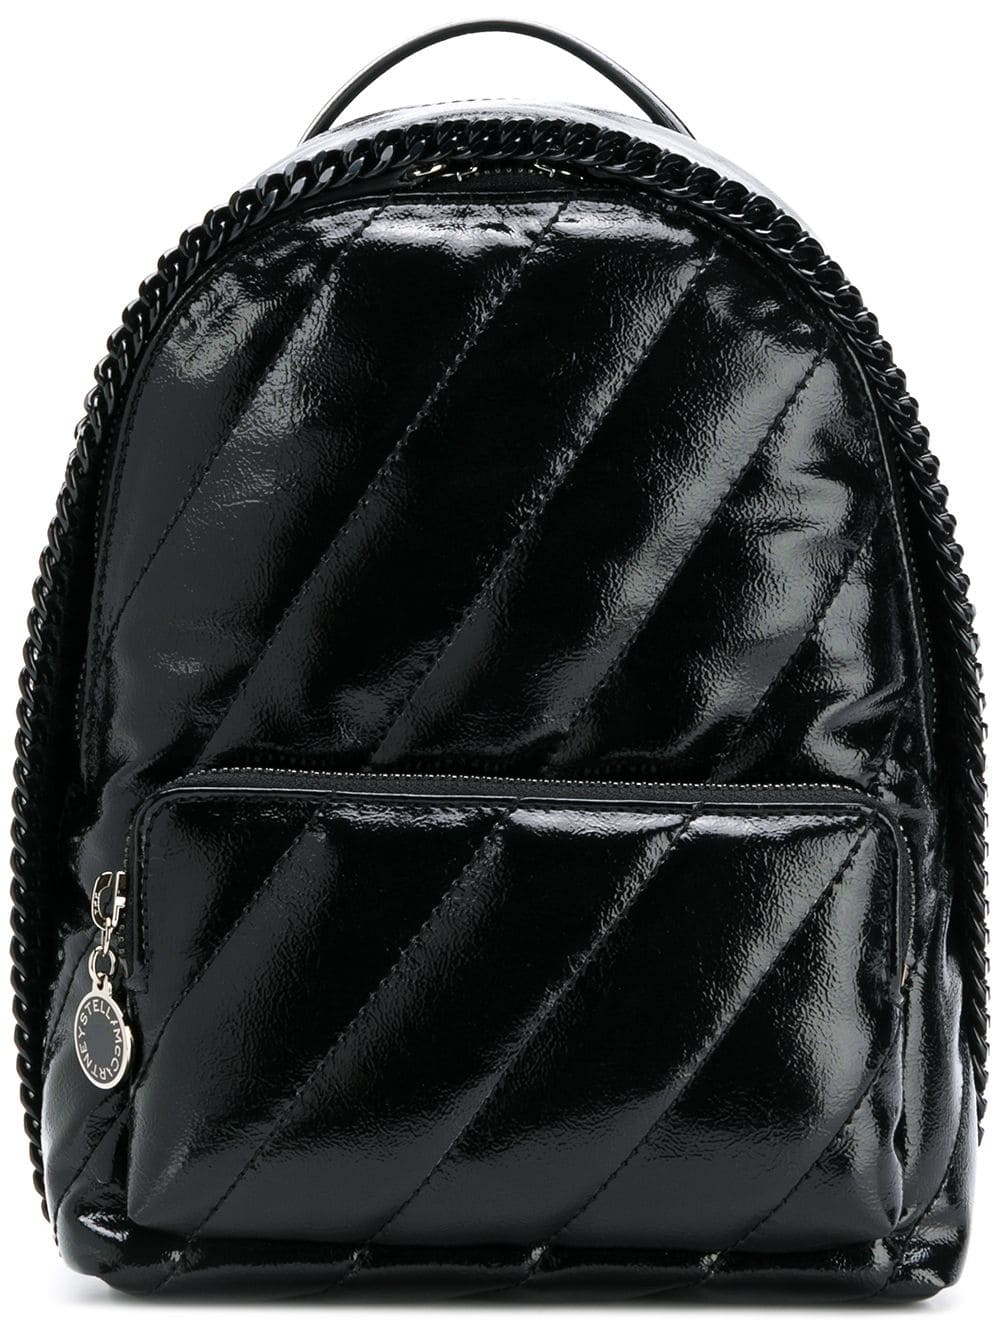 d6841aab467 stella-mccartney-patent-faux-leather-backpack-black -farfetch-com-photo.jpg 1542781188